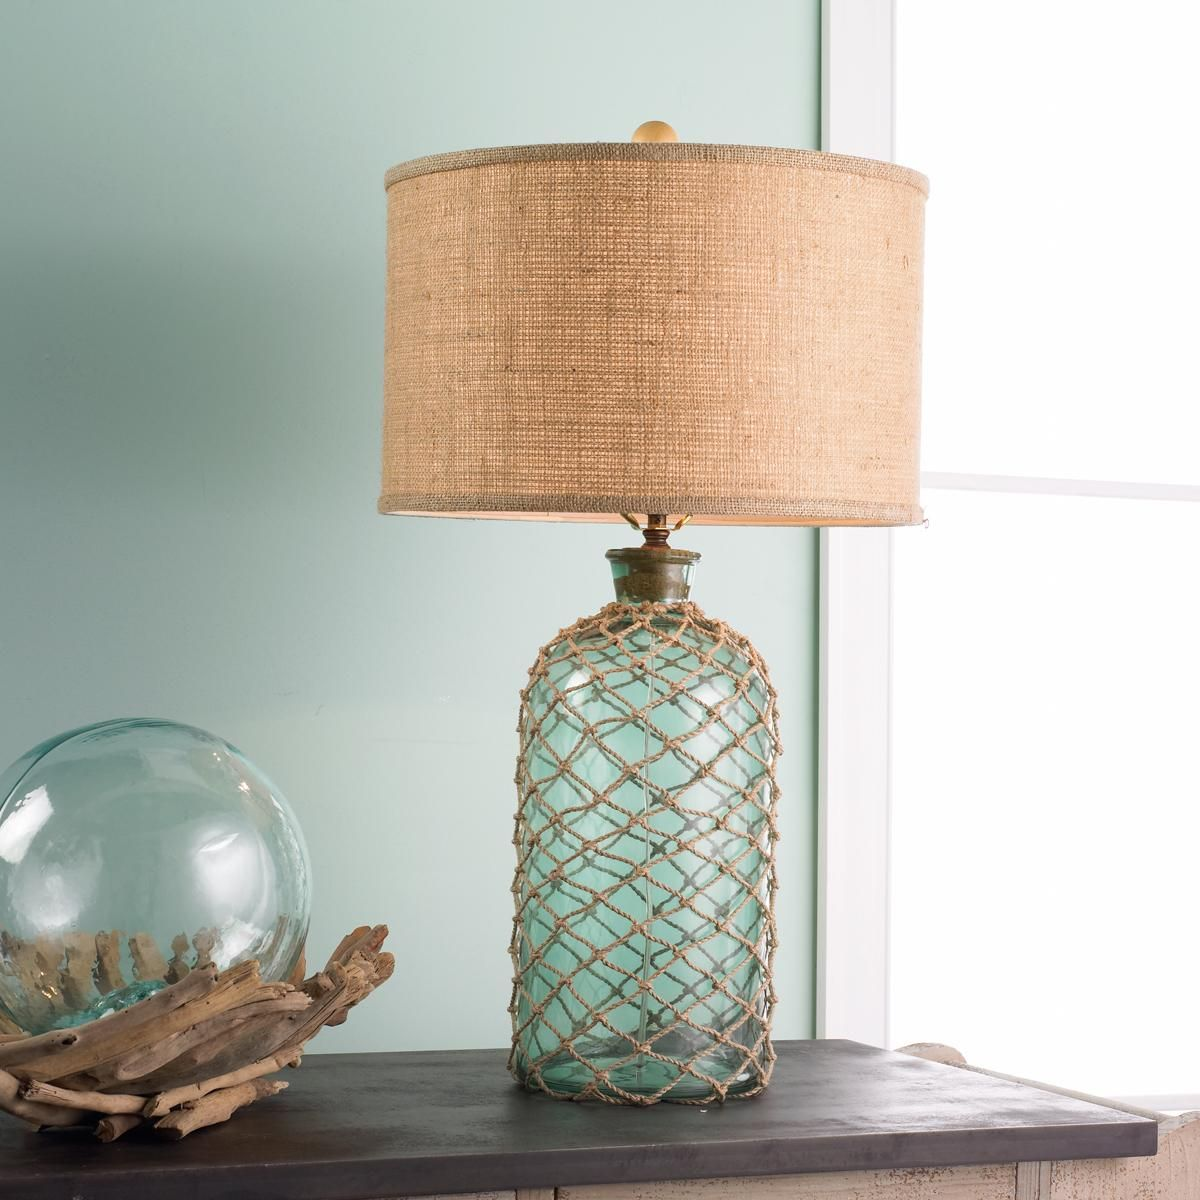 Green Glass Jug with Rope Netting Table Lamp Coastal and